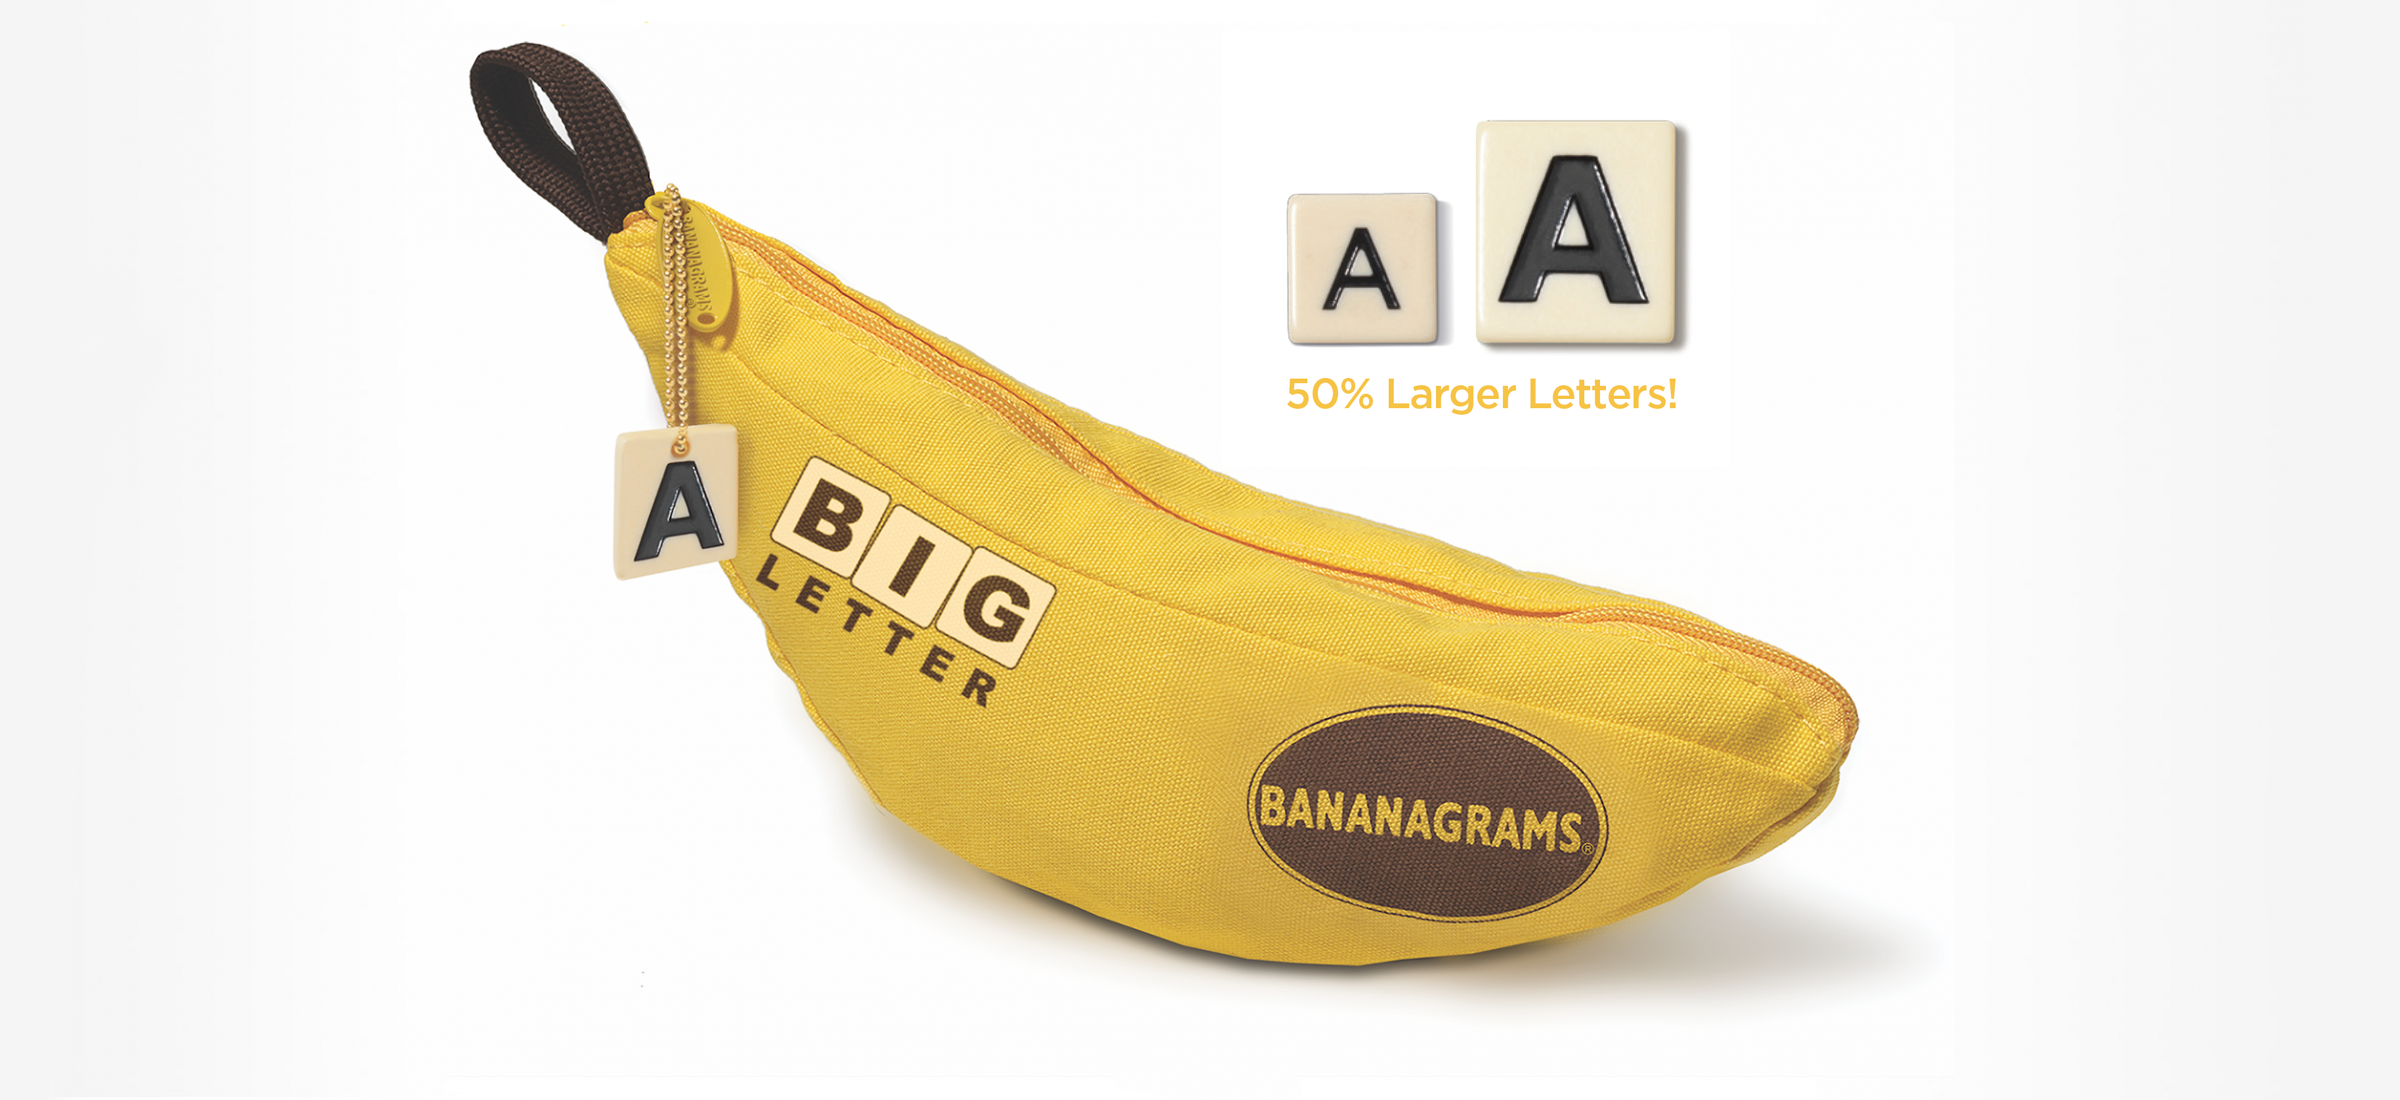 Big Letter Bananagrams Game for Low Vision